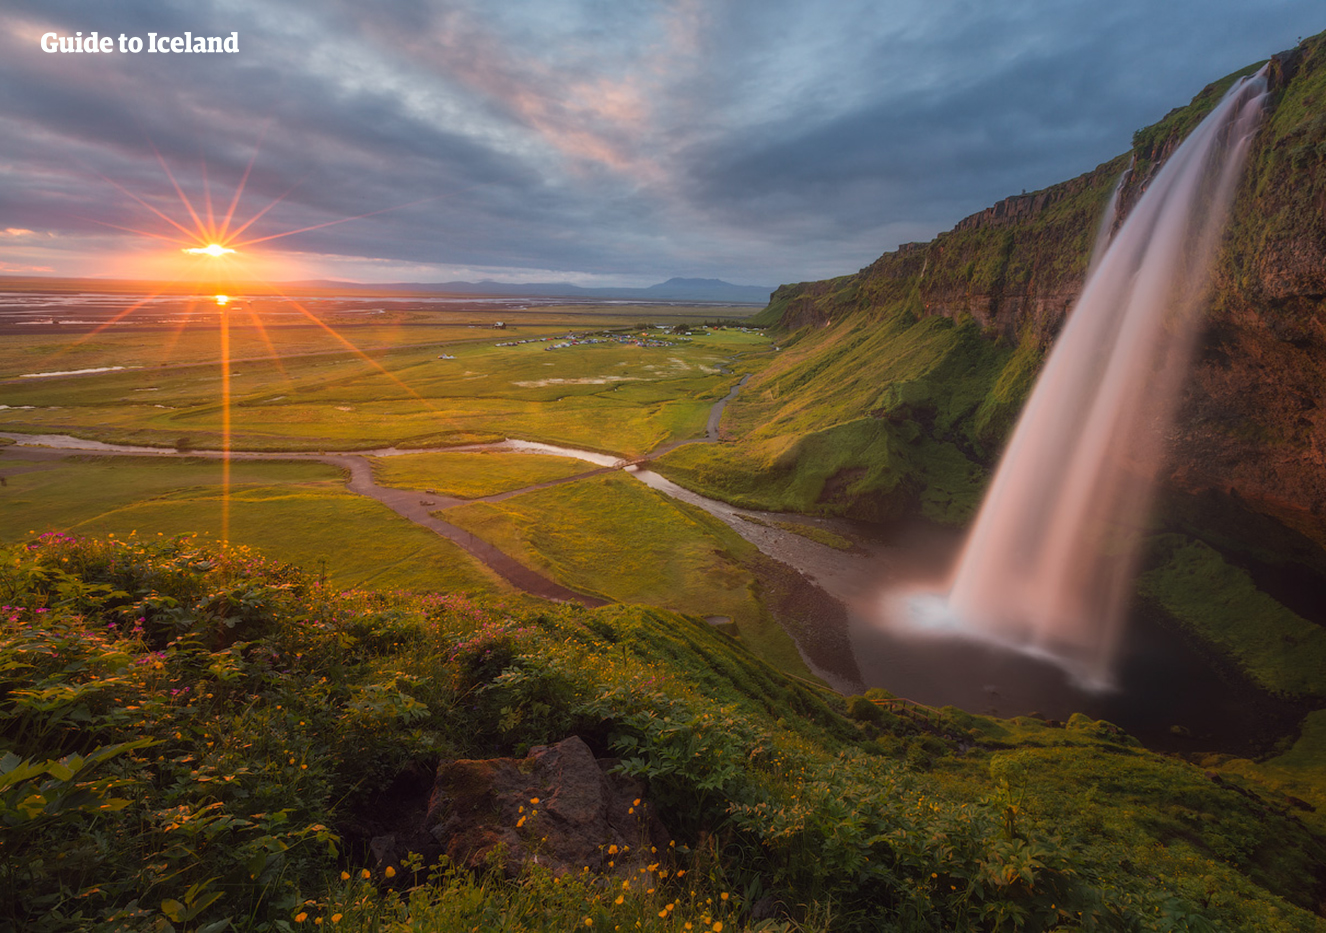 Seljalandsfoss waterfall cascades from a height of 60 m (197 ft), over a concave cliff that used to mark the edge of Iceland's southern coast.